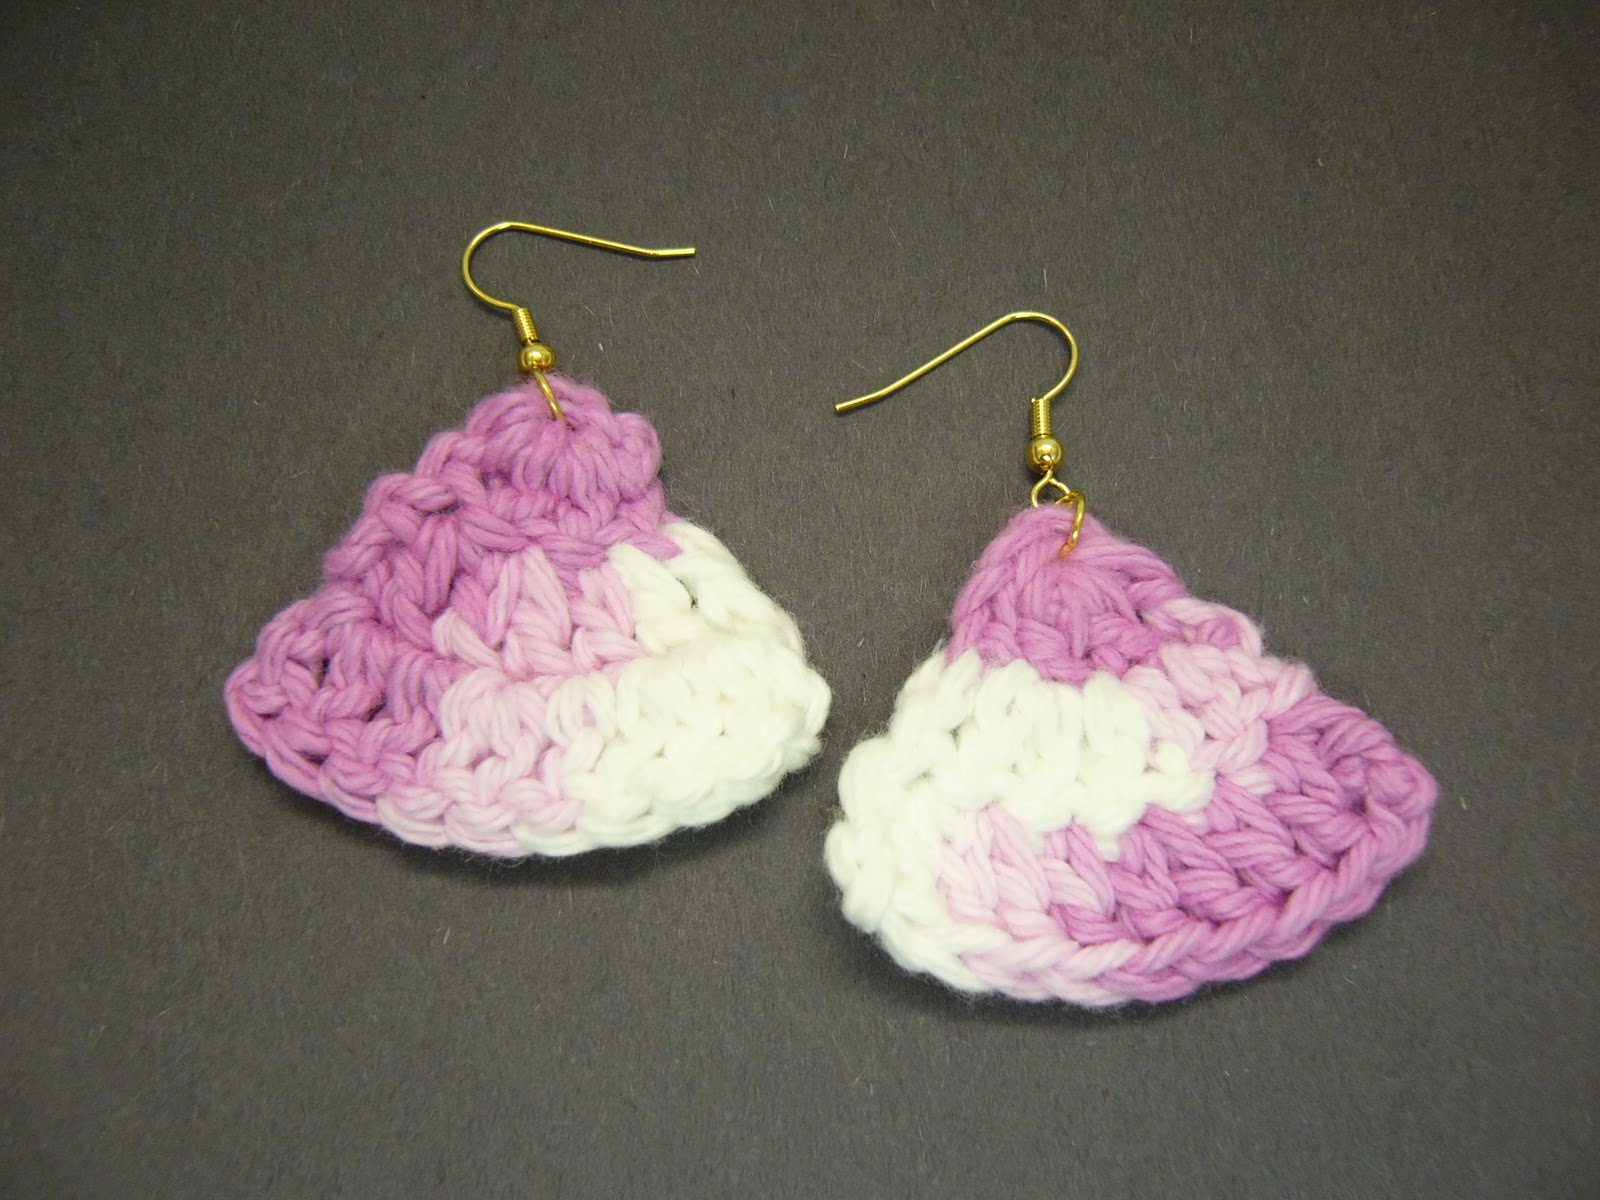 Crochet Patterns Free Jewelry : FREE CROCHET JEWELRY PATTERNS - Crochet ? Learn How to Crochet